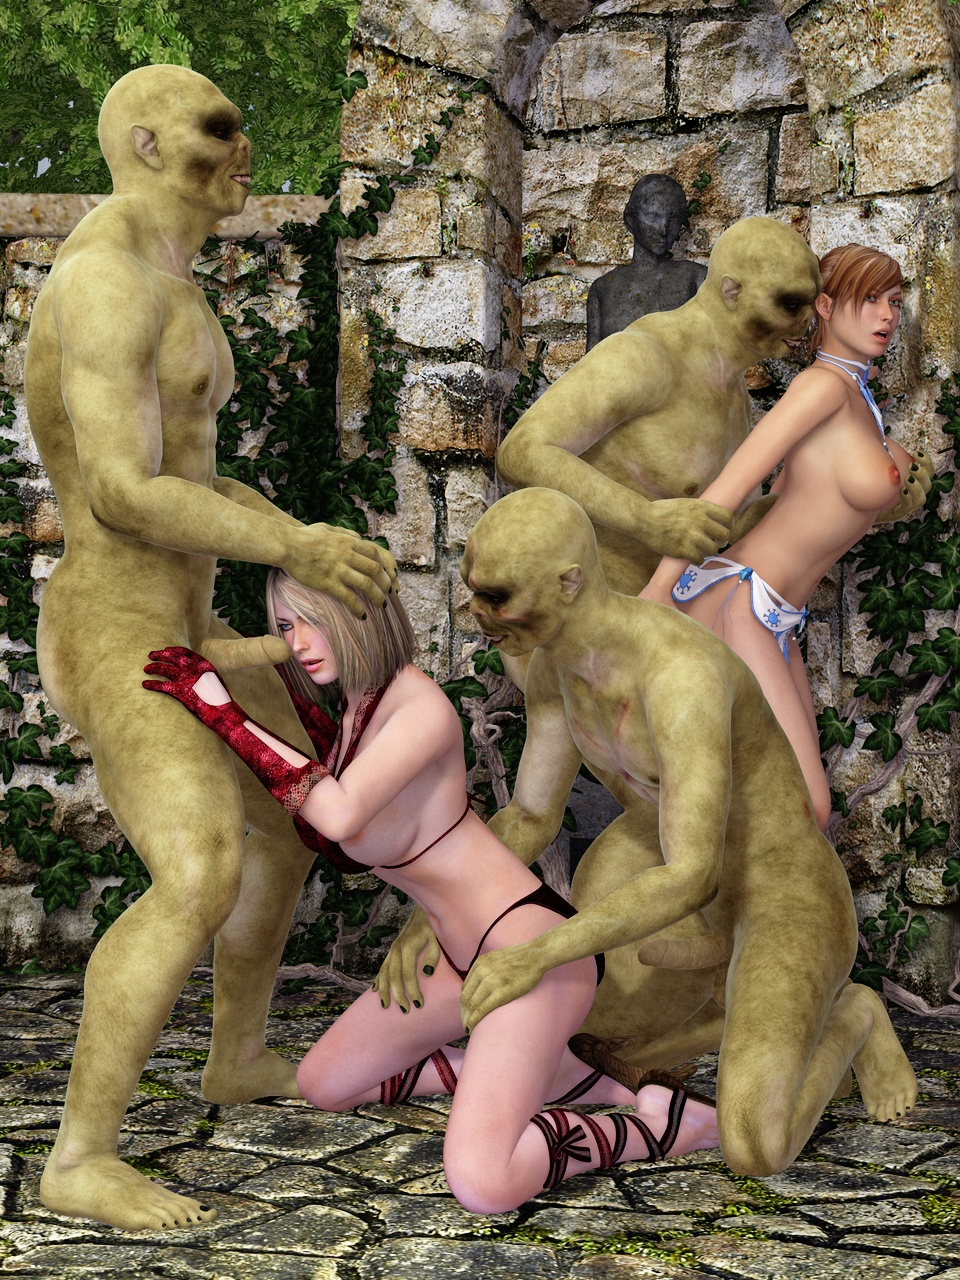 World of Porncraft monster porn hentay animation babes